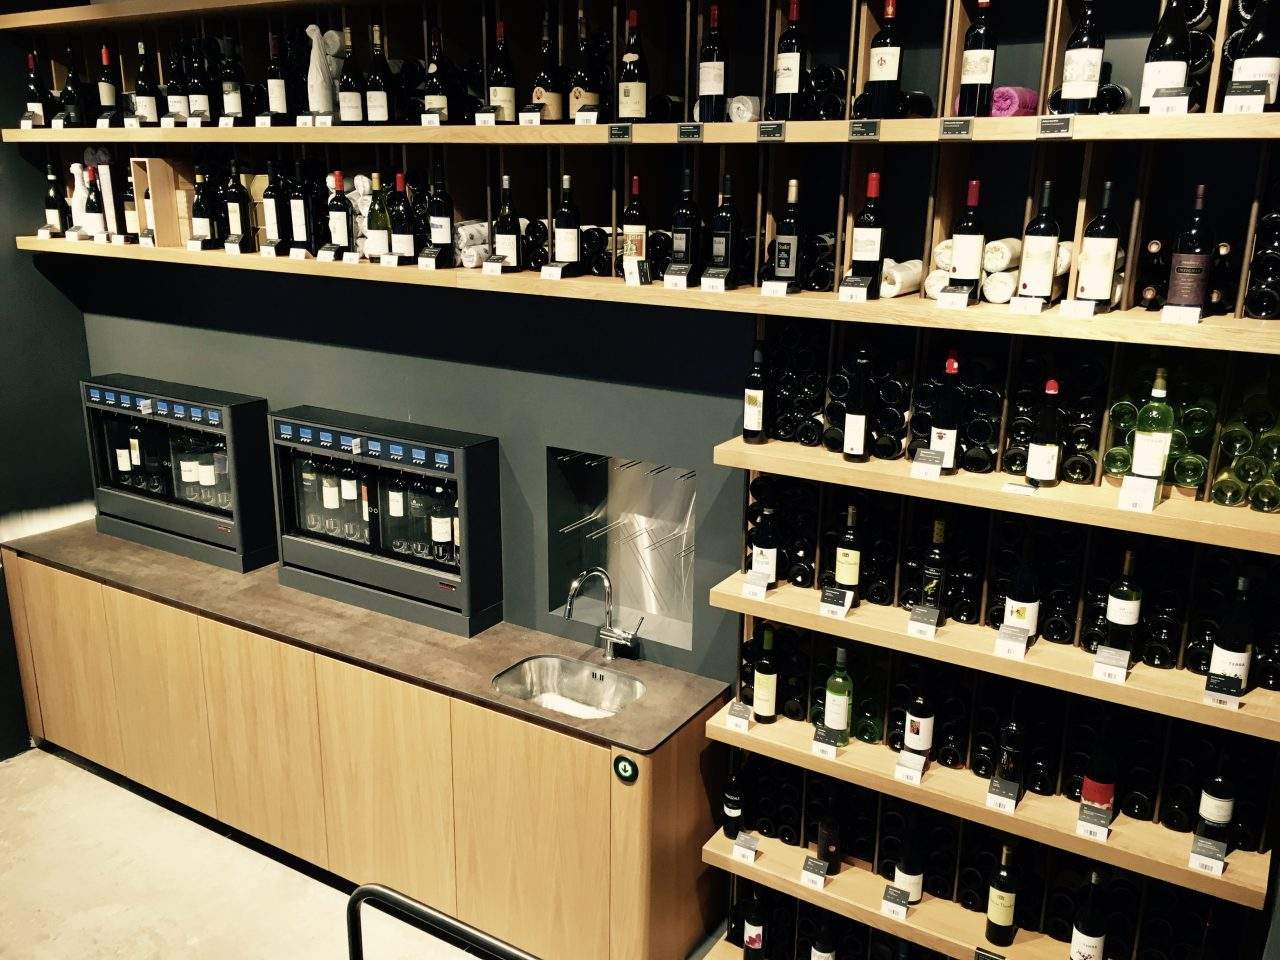 Serving wine by the glass with Wineemotion wine dispensers